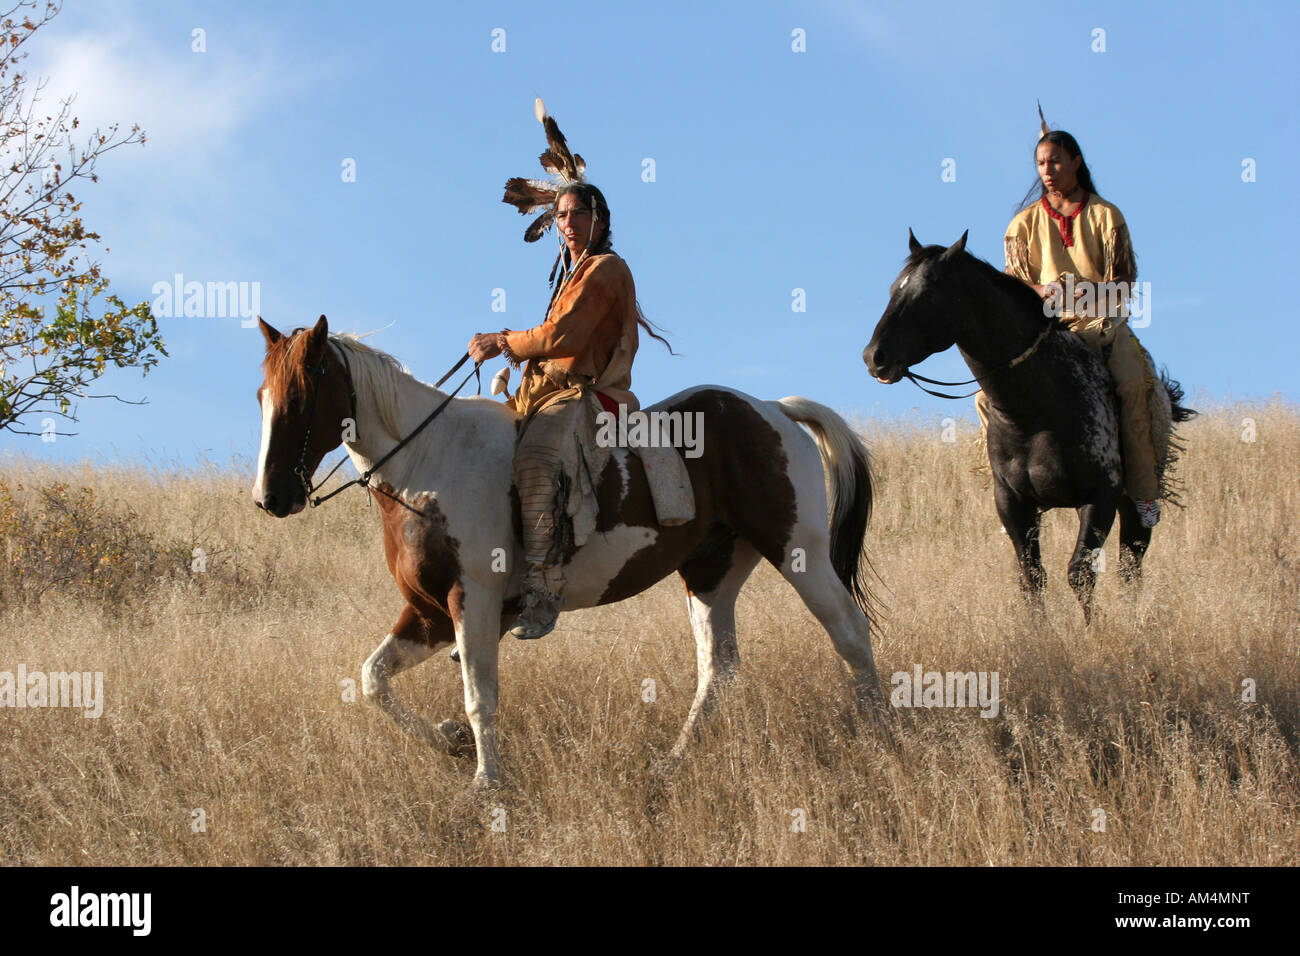 Two Native American Indian men on horseback scouting for enemies or hunting for food in the prairie of South Dakota - Stock Image